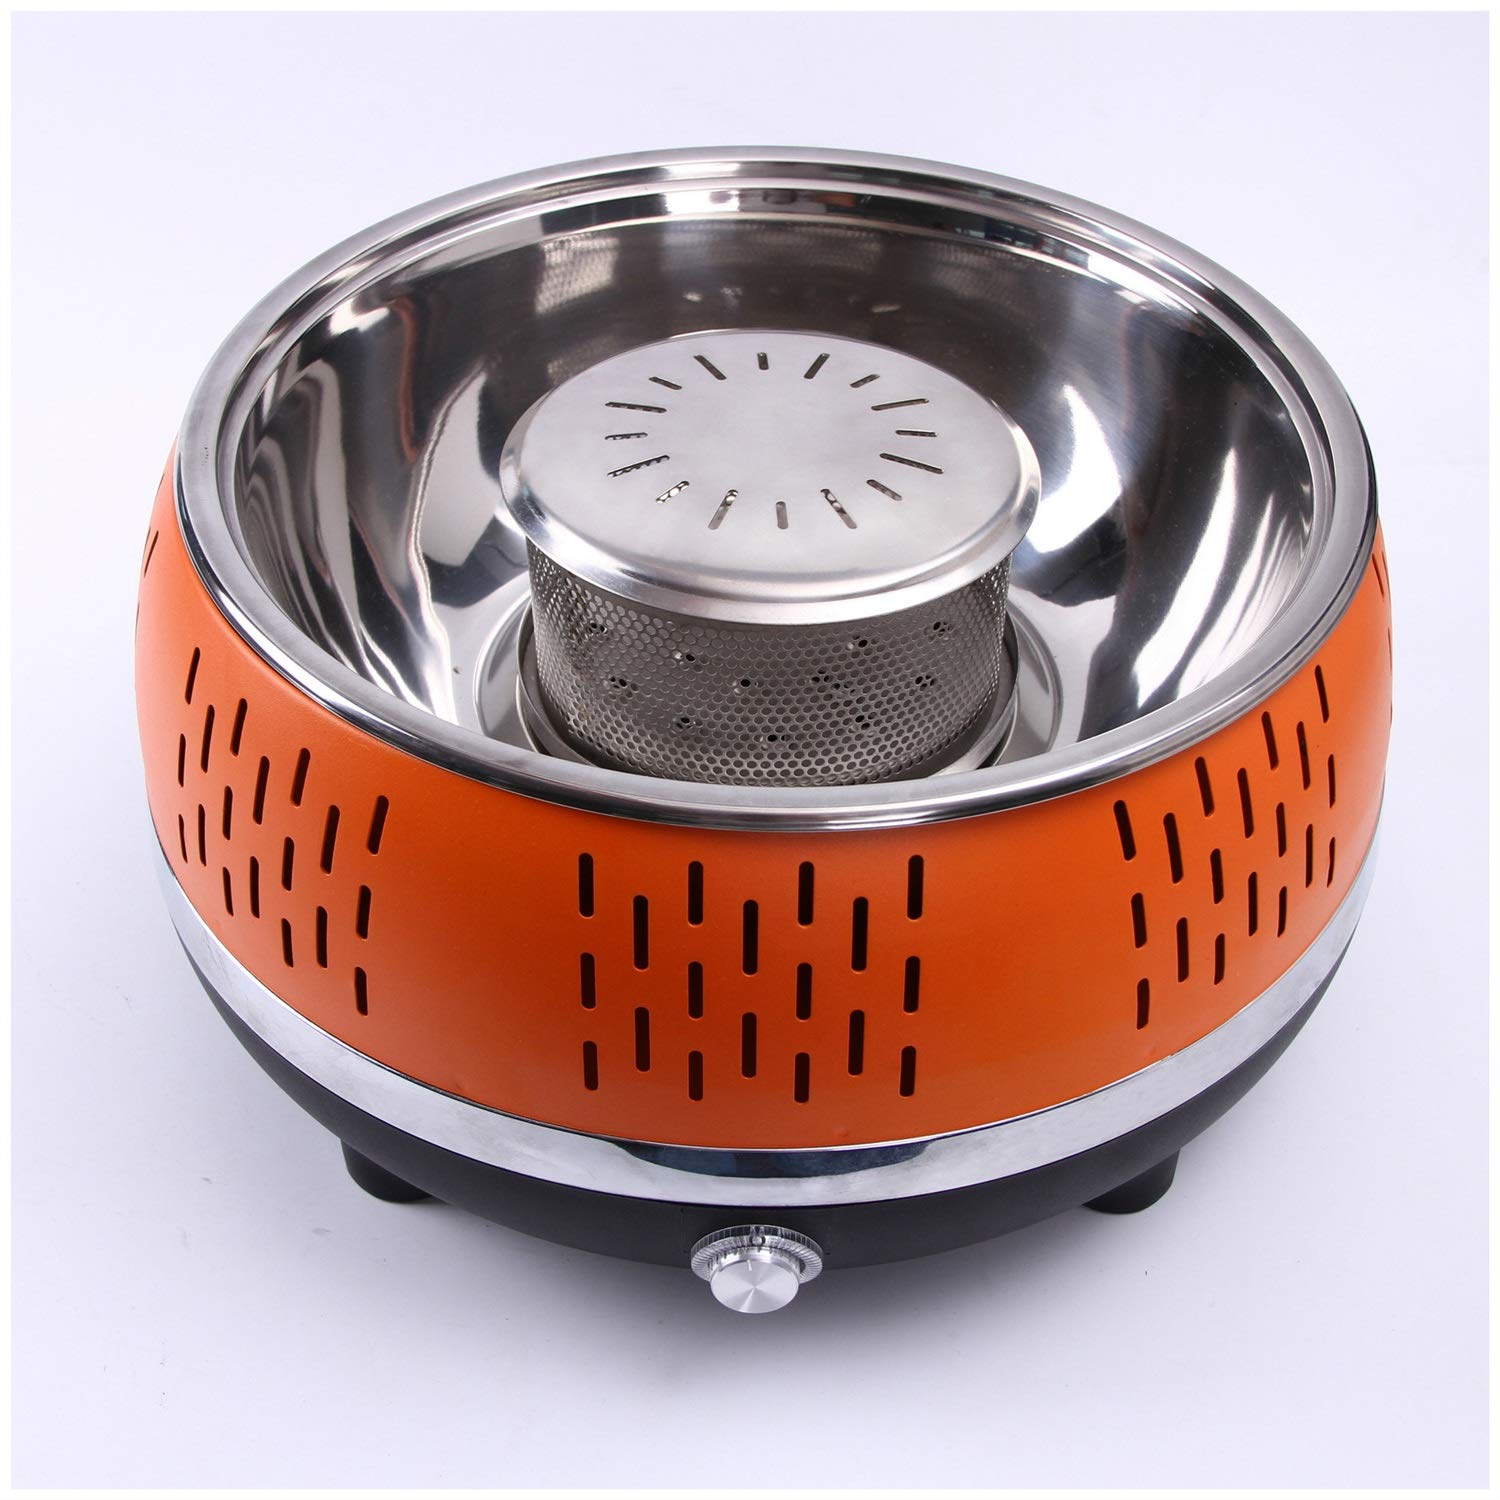 TangFeii Outdoor Stainless Steel smokeless Charcoal Grill Large Round Barbecue Stove Camping Portable Smoked Korean Carbon Oven